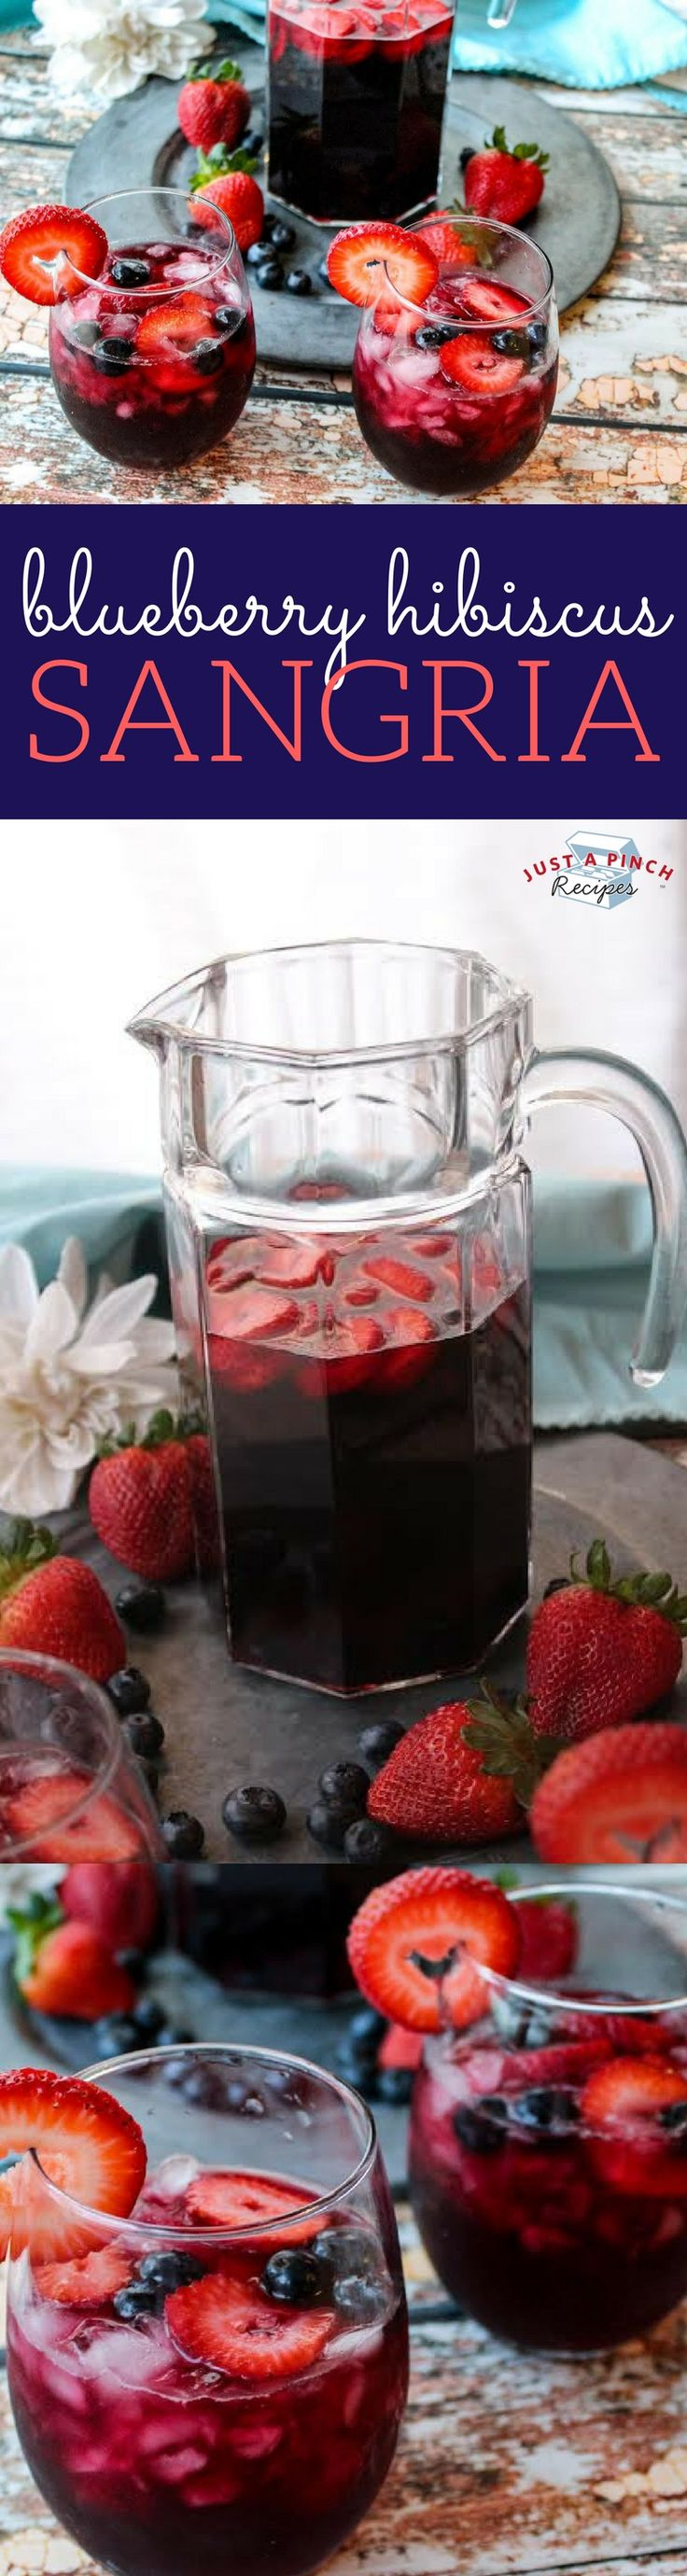 This blueberry hibiscus sangria recipe is a light, crisp, refreshing beverage - perfect for Summertime!